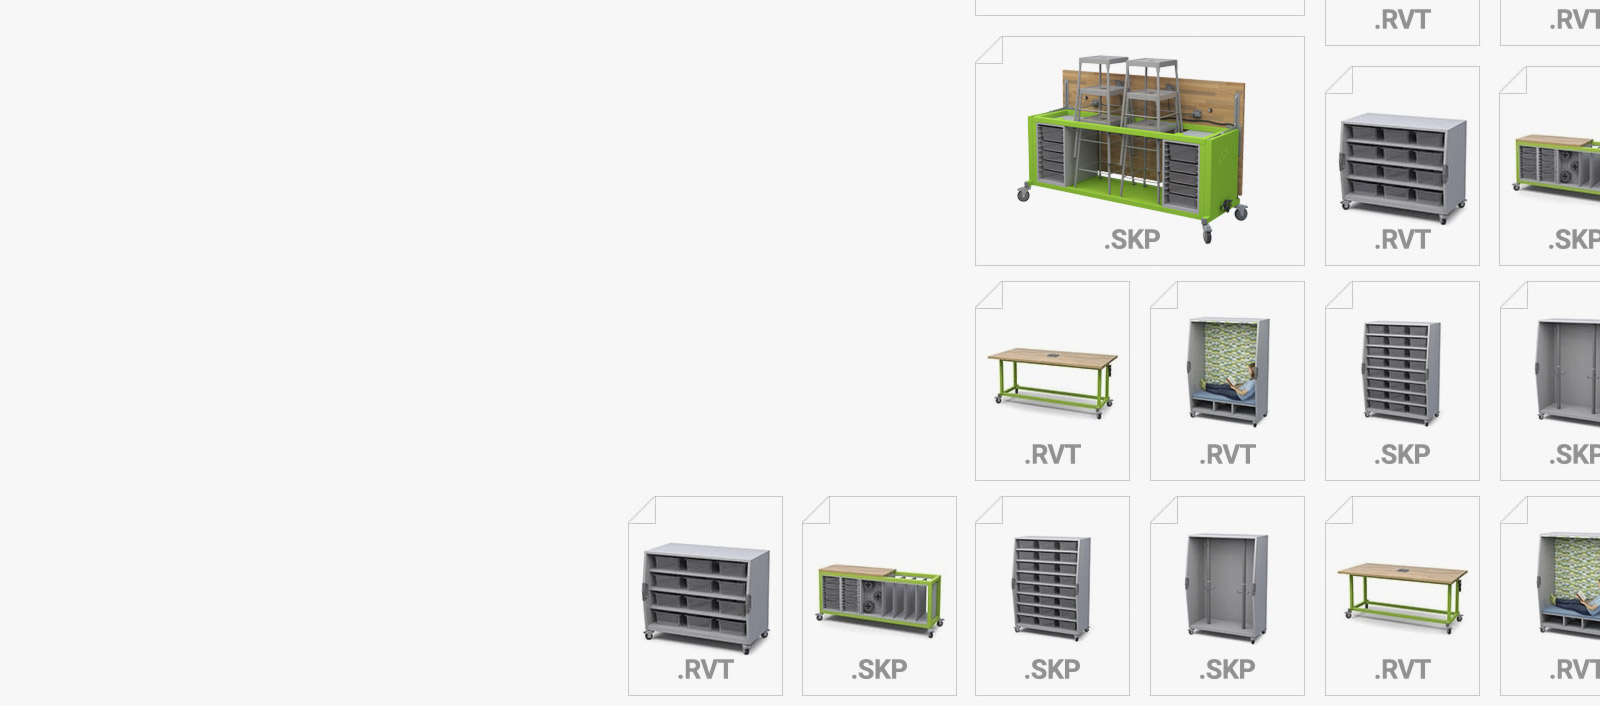 Explorer Series Revit & SketchUp Files Now Available